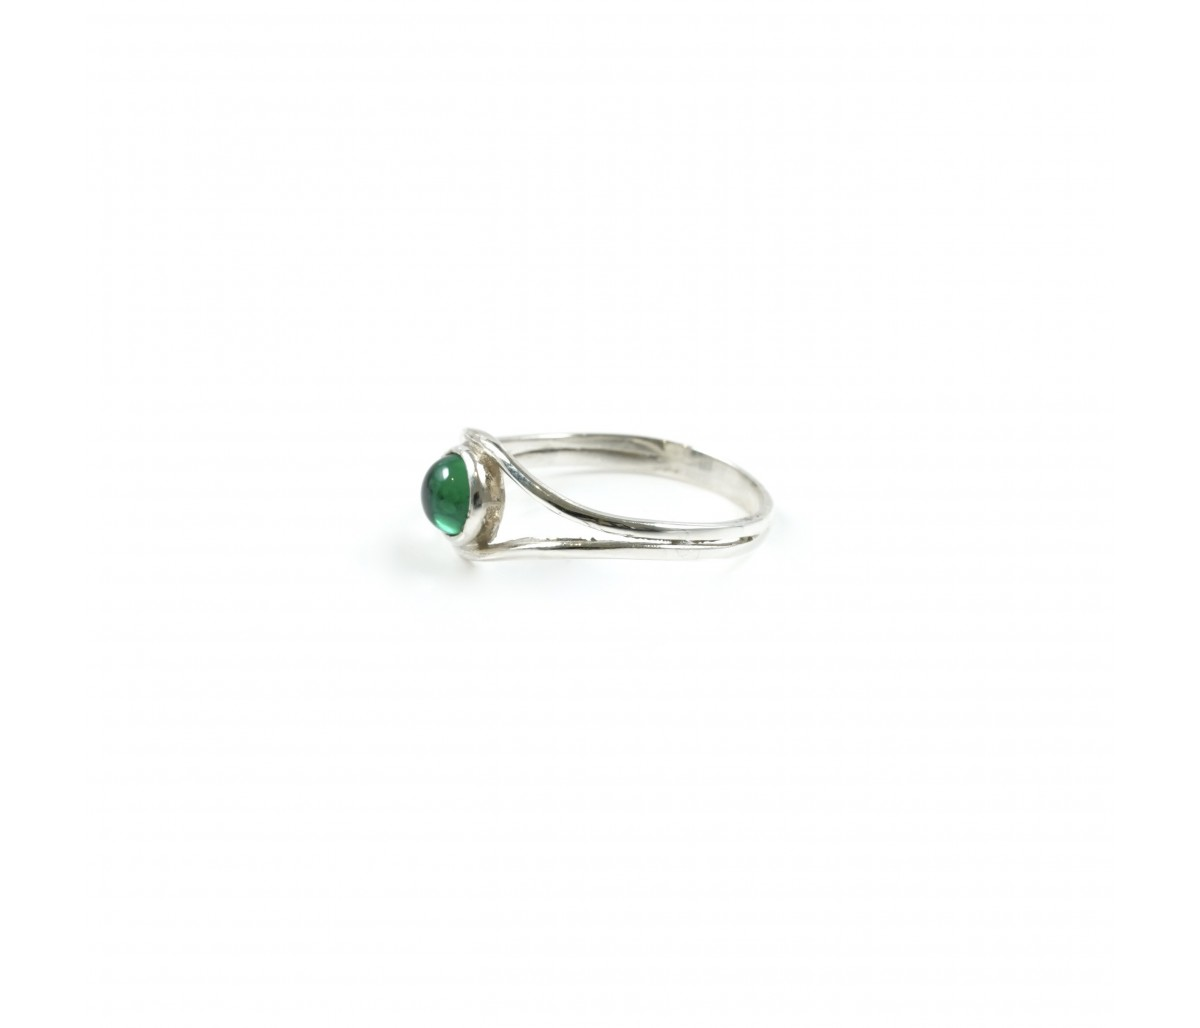 New green Indi ring